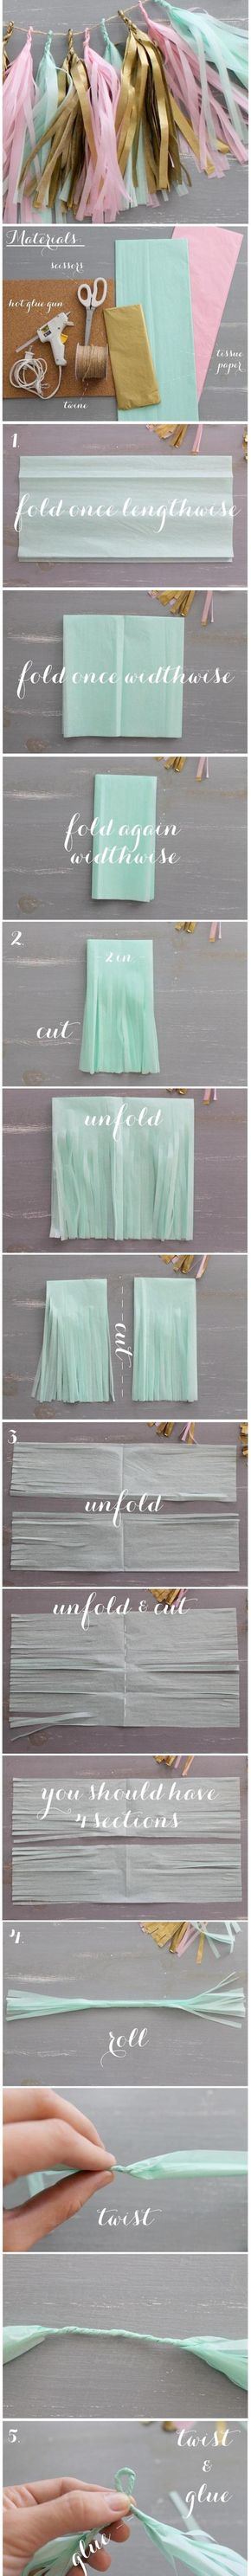 Top 10 DIY Party Crafts - How to make tassel garland- perfect for a celebration & easy to make!